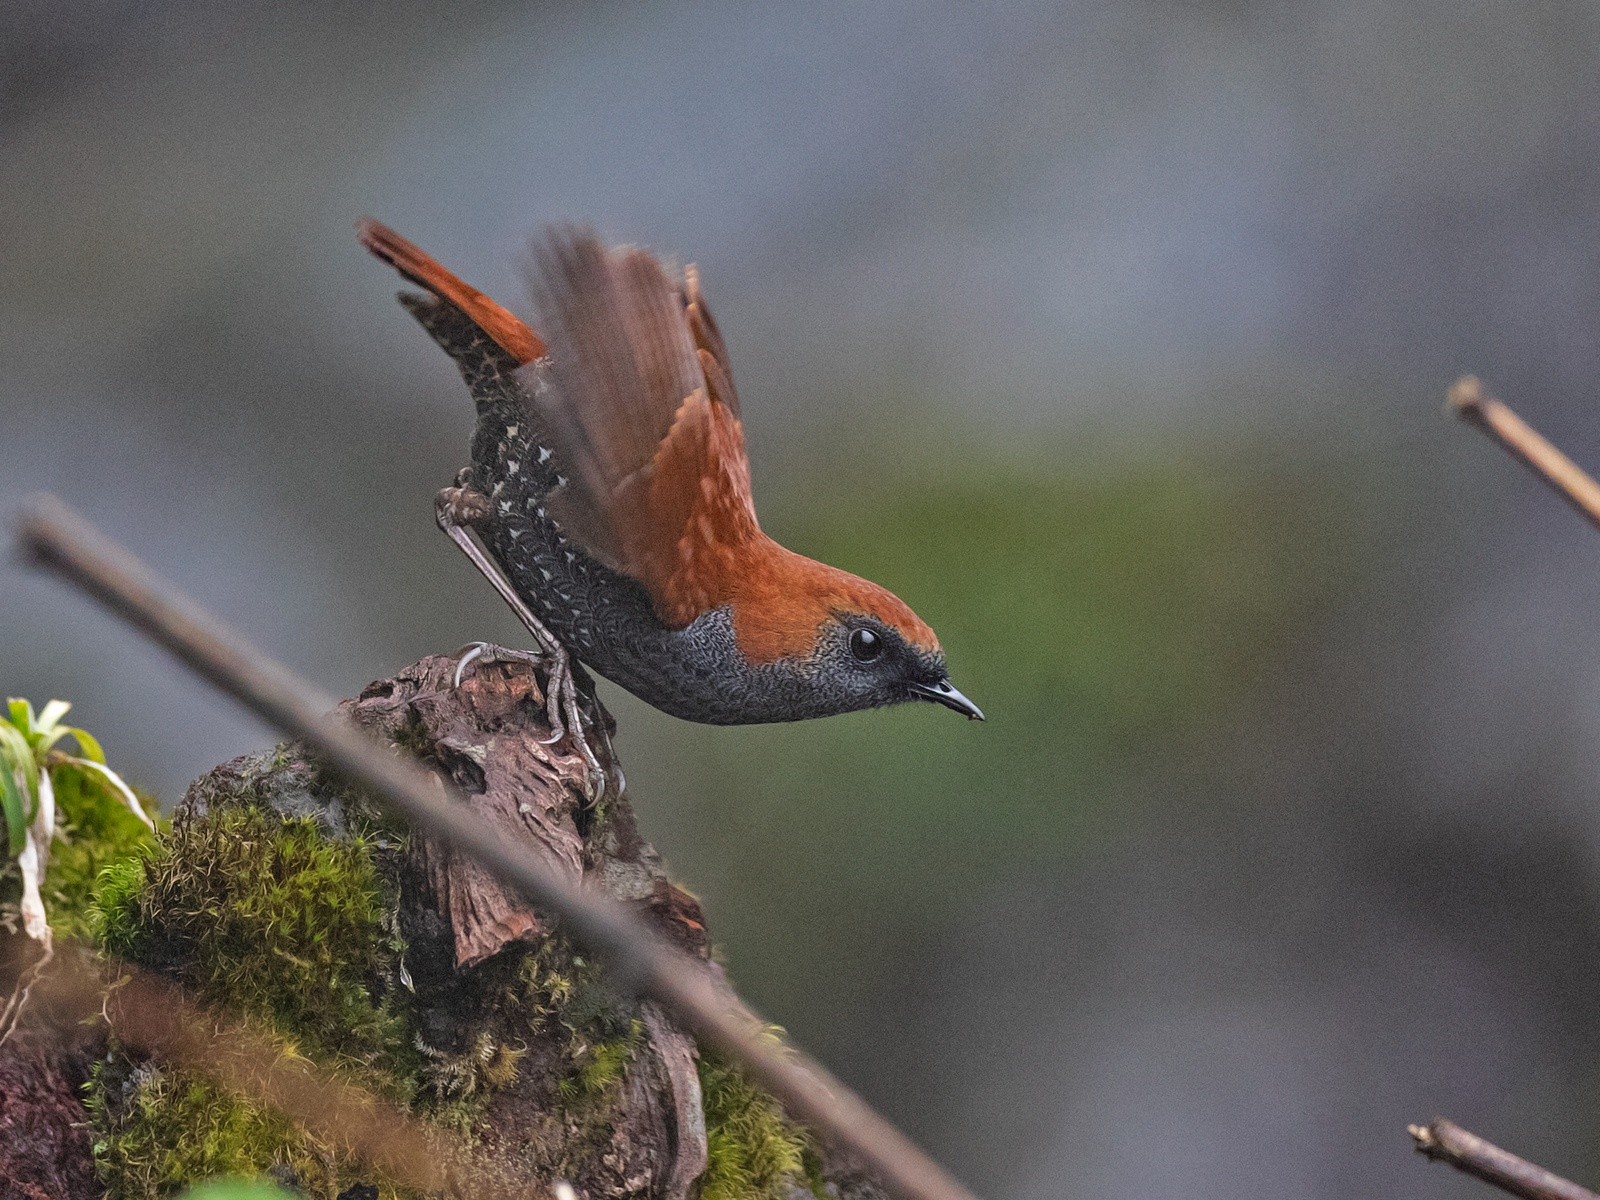 Gould's shortwing is one of the many species of birds found in the biodiverse Dibang Valley. Unfortunately, a recent proposal intends to build a hydroelectric project that may lead to large-scale deforestation and destruction of the pristine habitat.  Photo: Shashank Dalvi